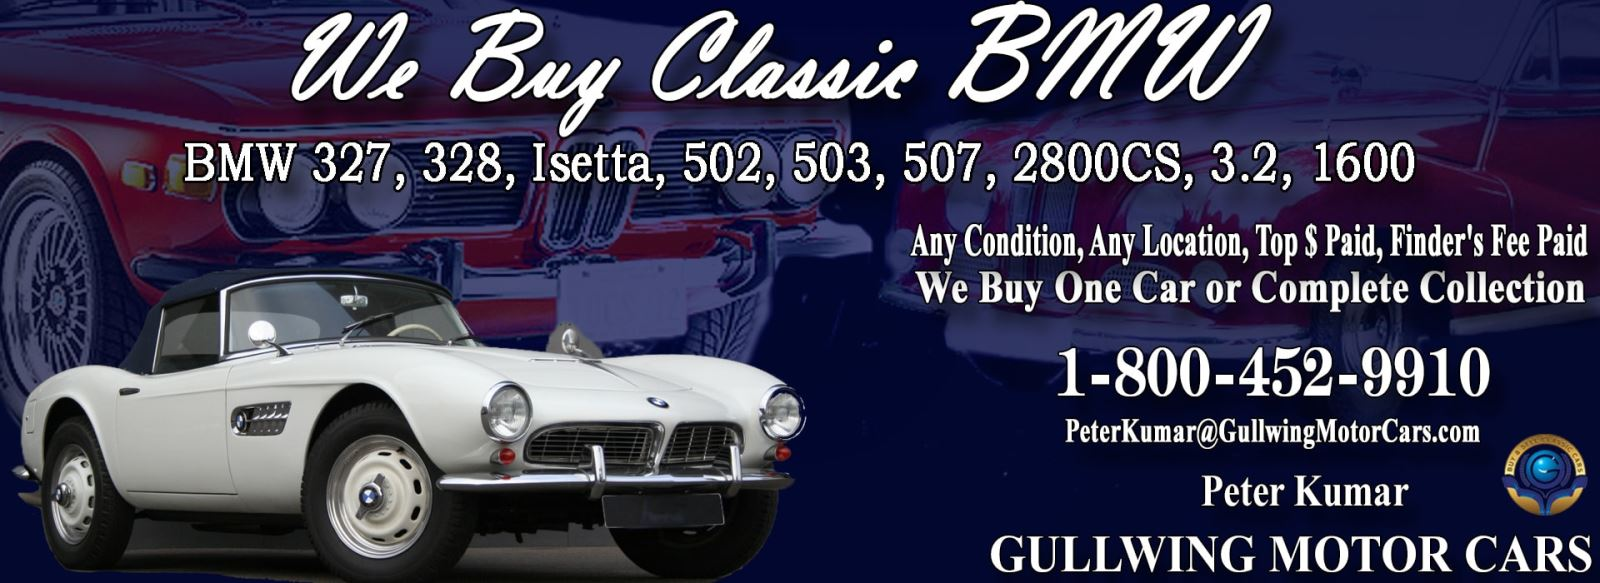 Classic BMW 328 for sale, we buy vintage BMW 328. Call Peter Kumar. Gullwing Motor